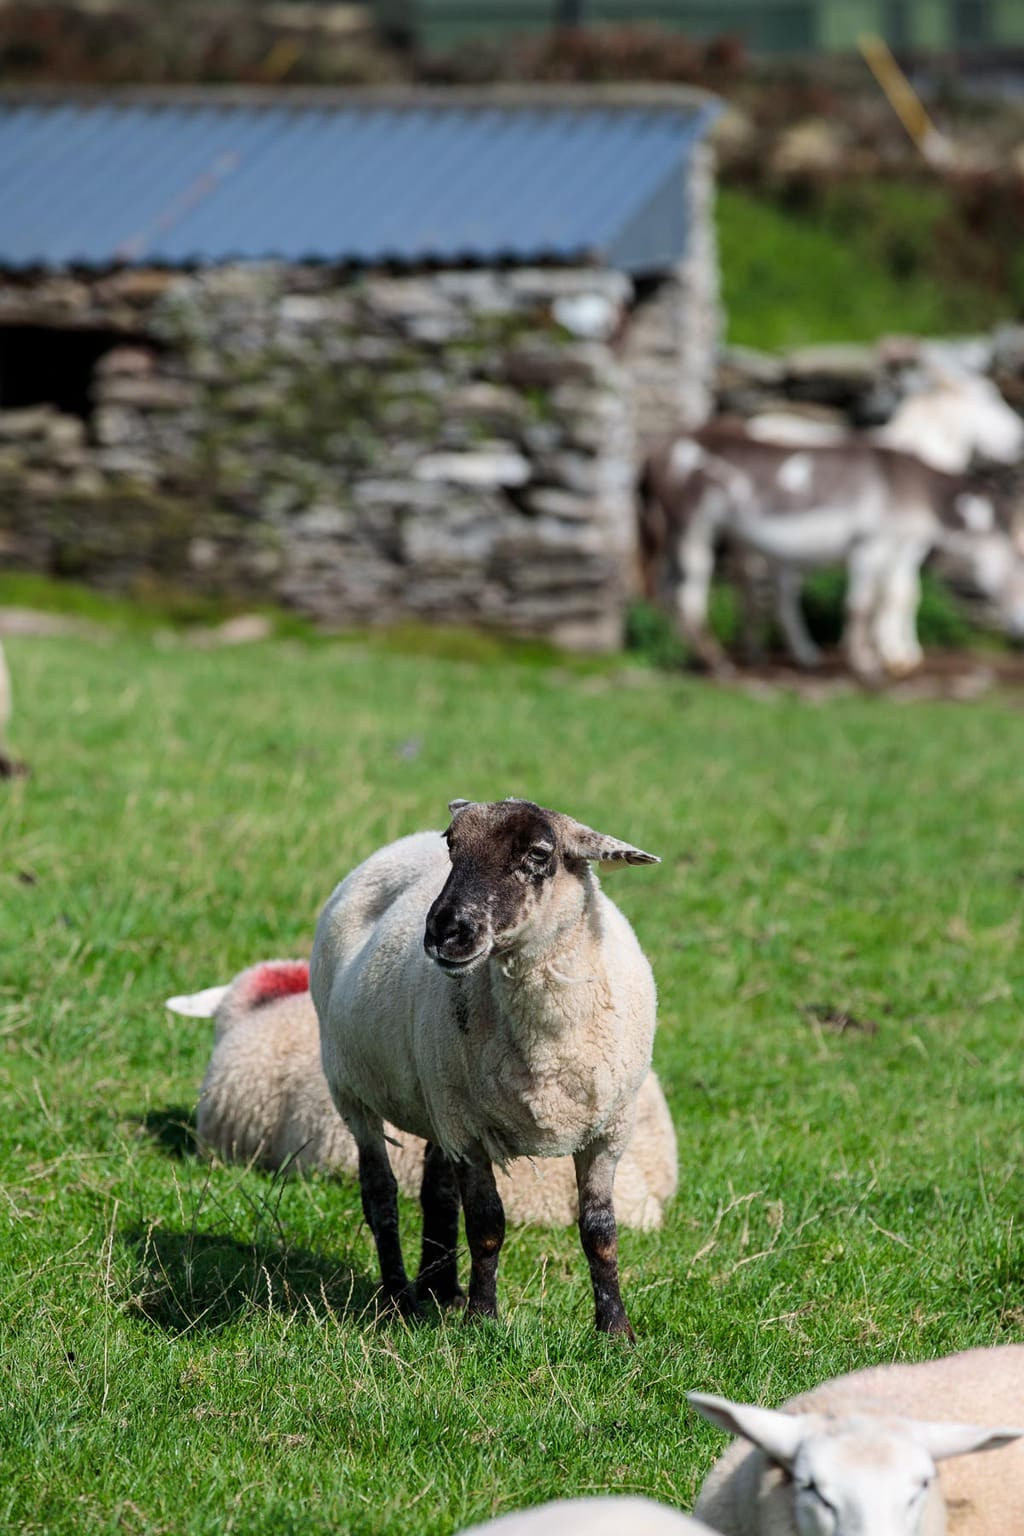 Sheep in a pasture in the Dingle Peninsula, Ireland.